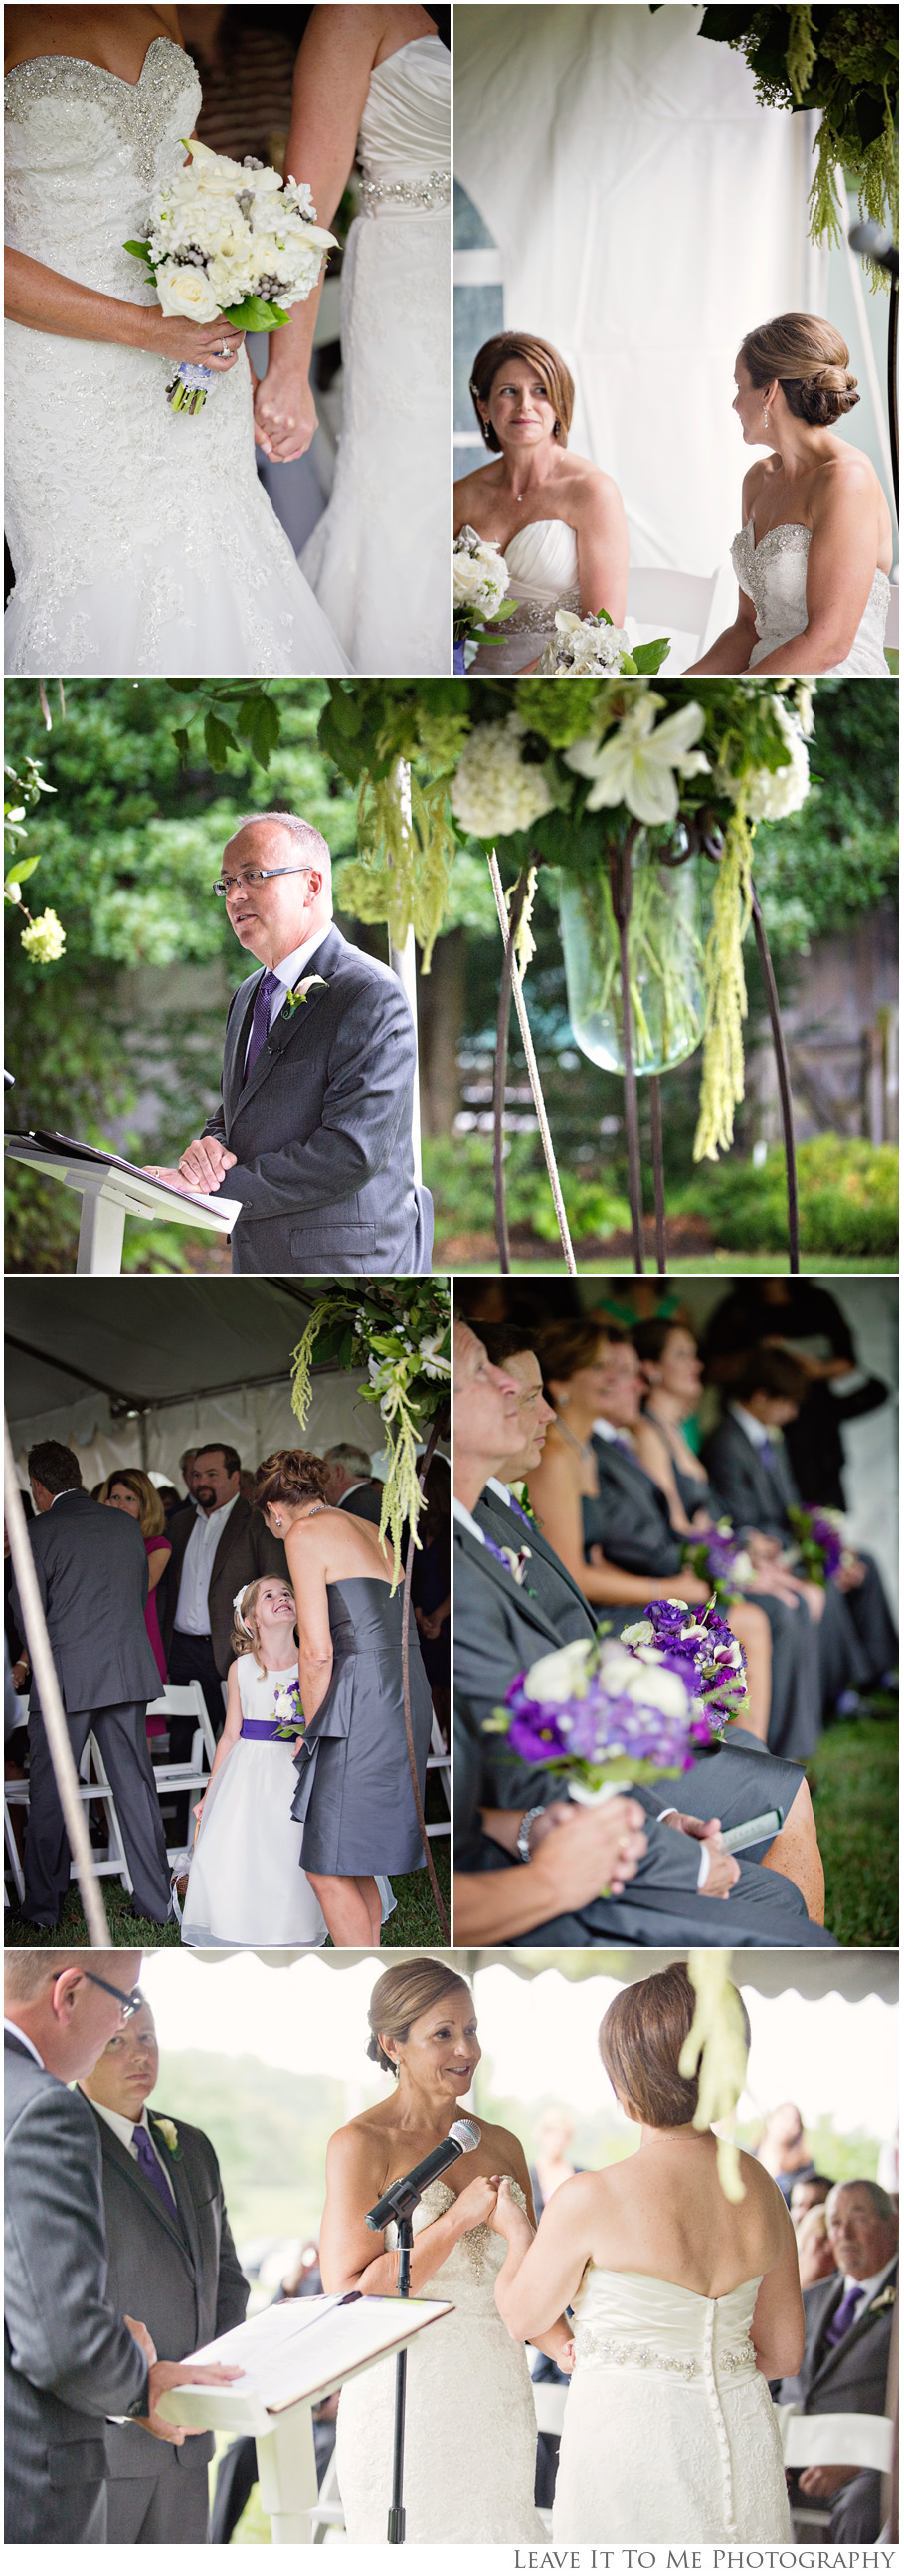 LGBT Wedding-Delaware Wedding Photographer-Equailty Wedding-Same Sex Wedding Ceremony-Vows